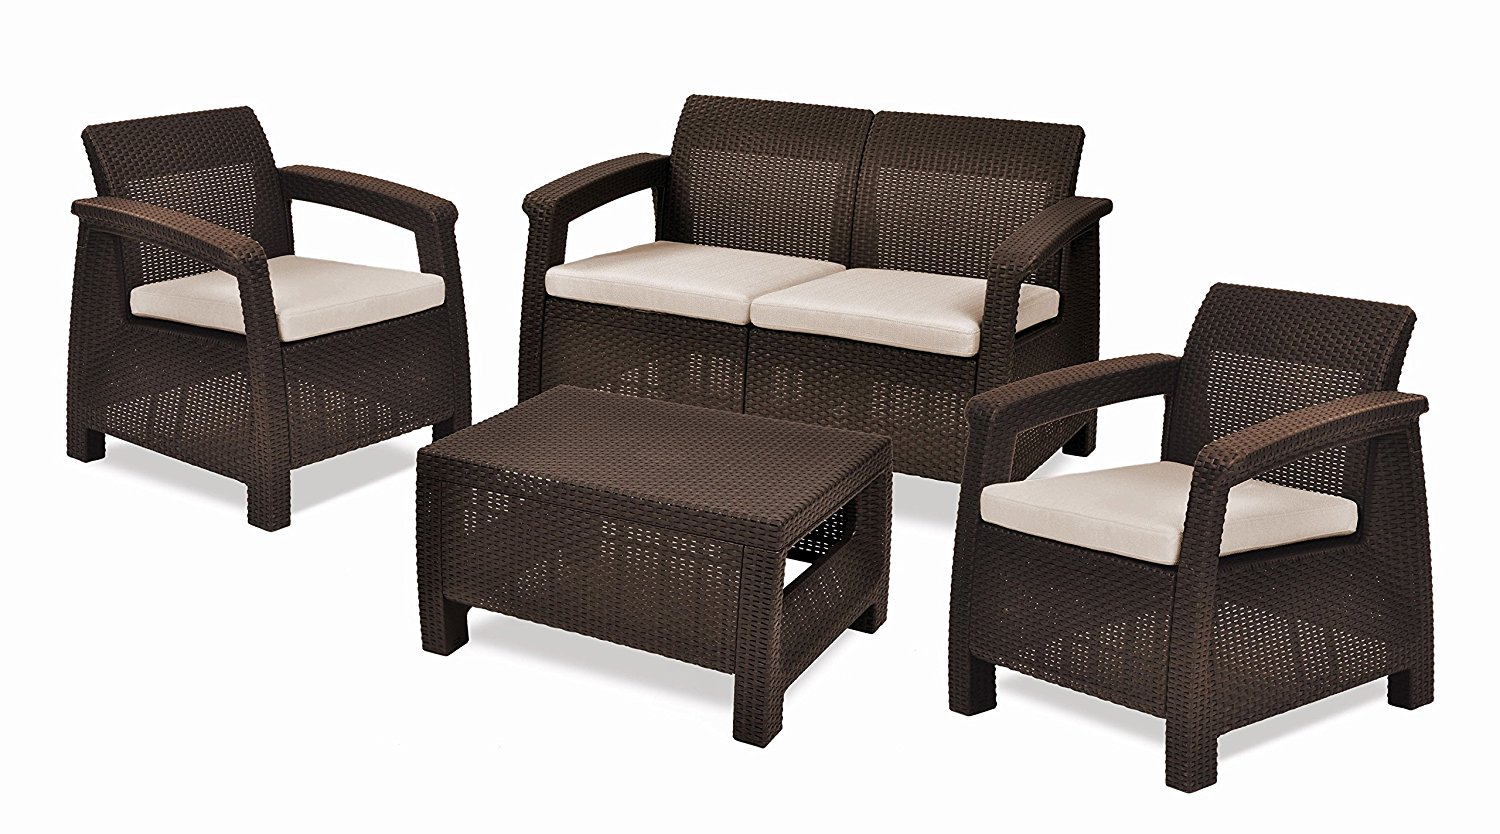 4-Piece All-Weather Resin Outdoor Patio Seating Furniture Set with Cushions, Brown Finish, Home Garden Set, Natural Rattan, Cushions, Loveseat, Armchairs, Bundle with Expert Guide for Better Life